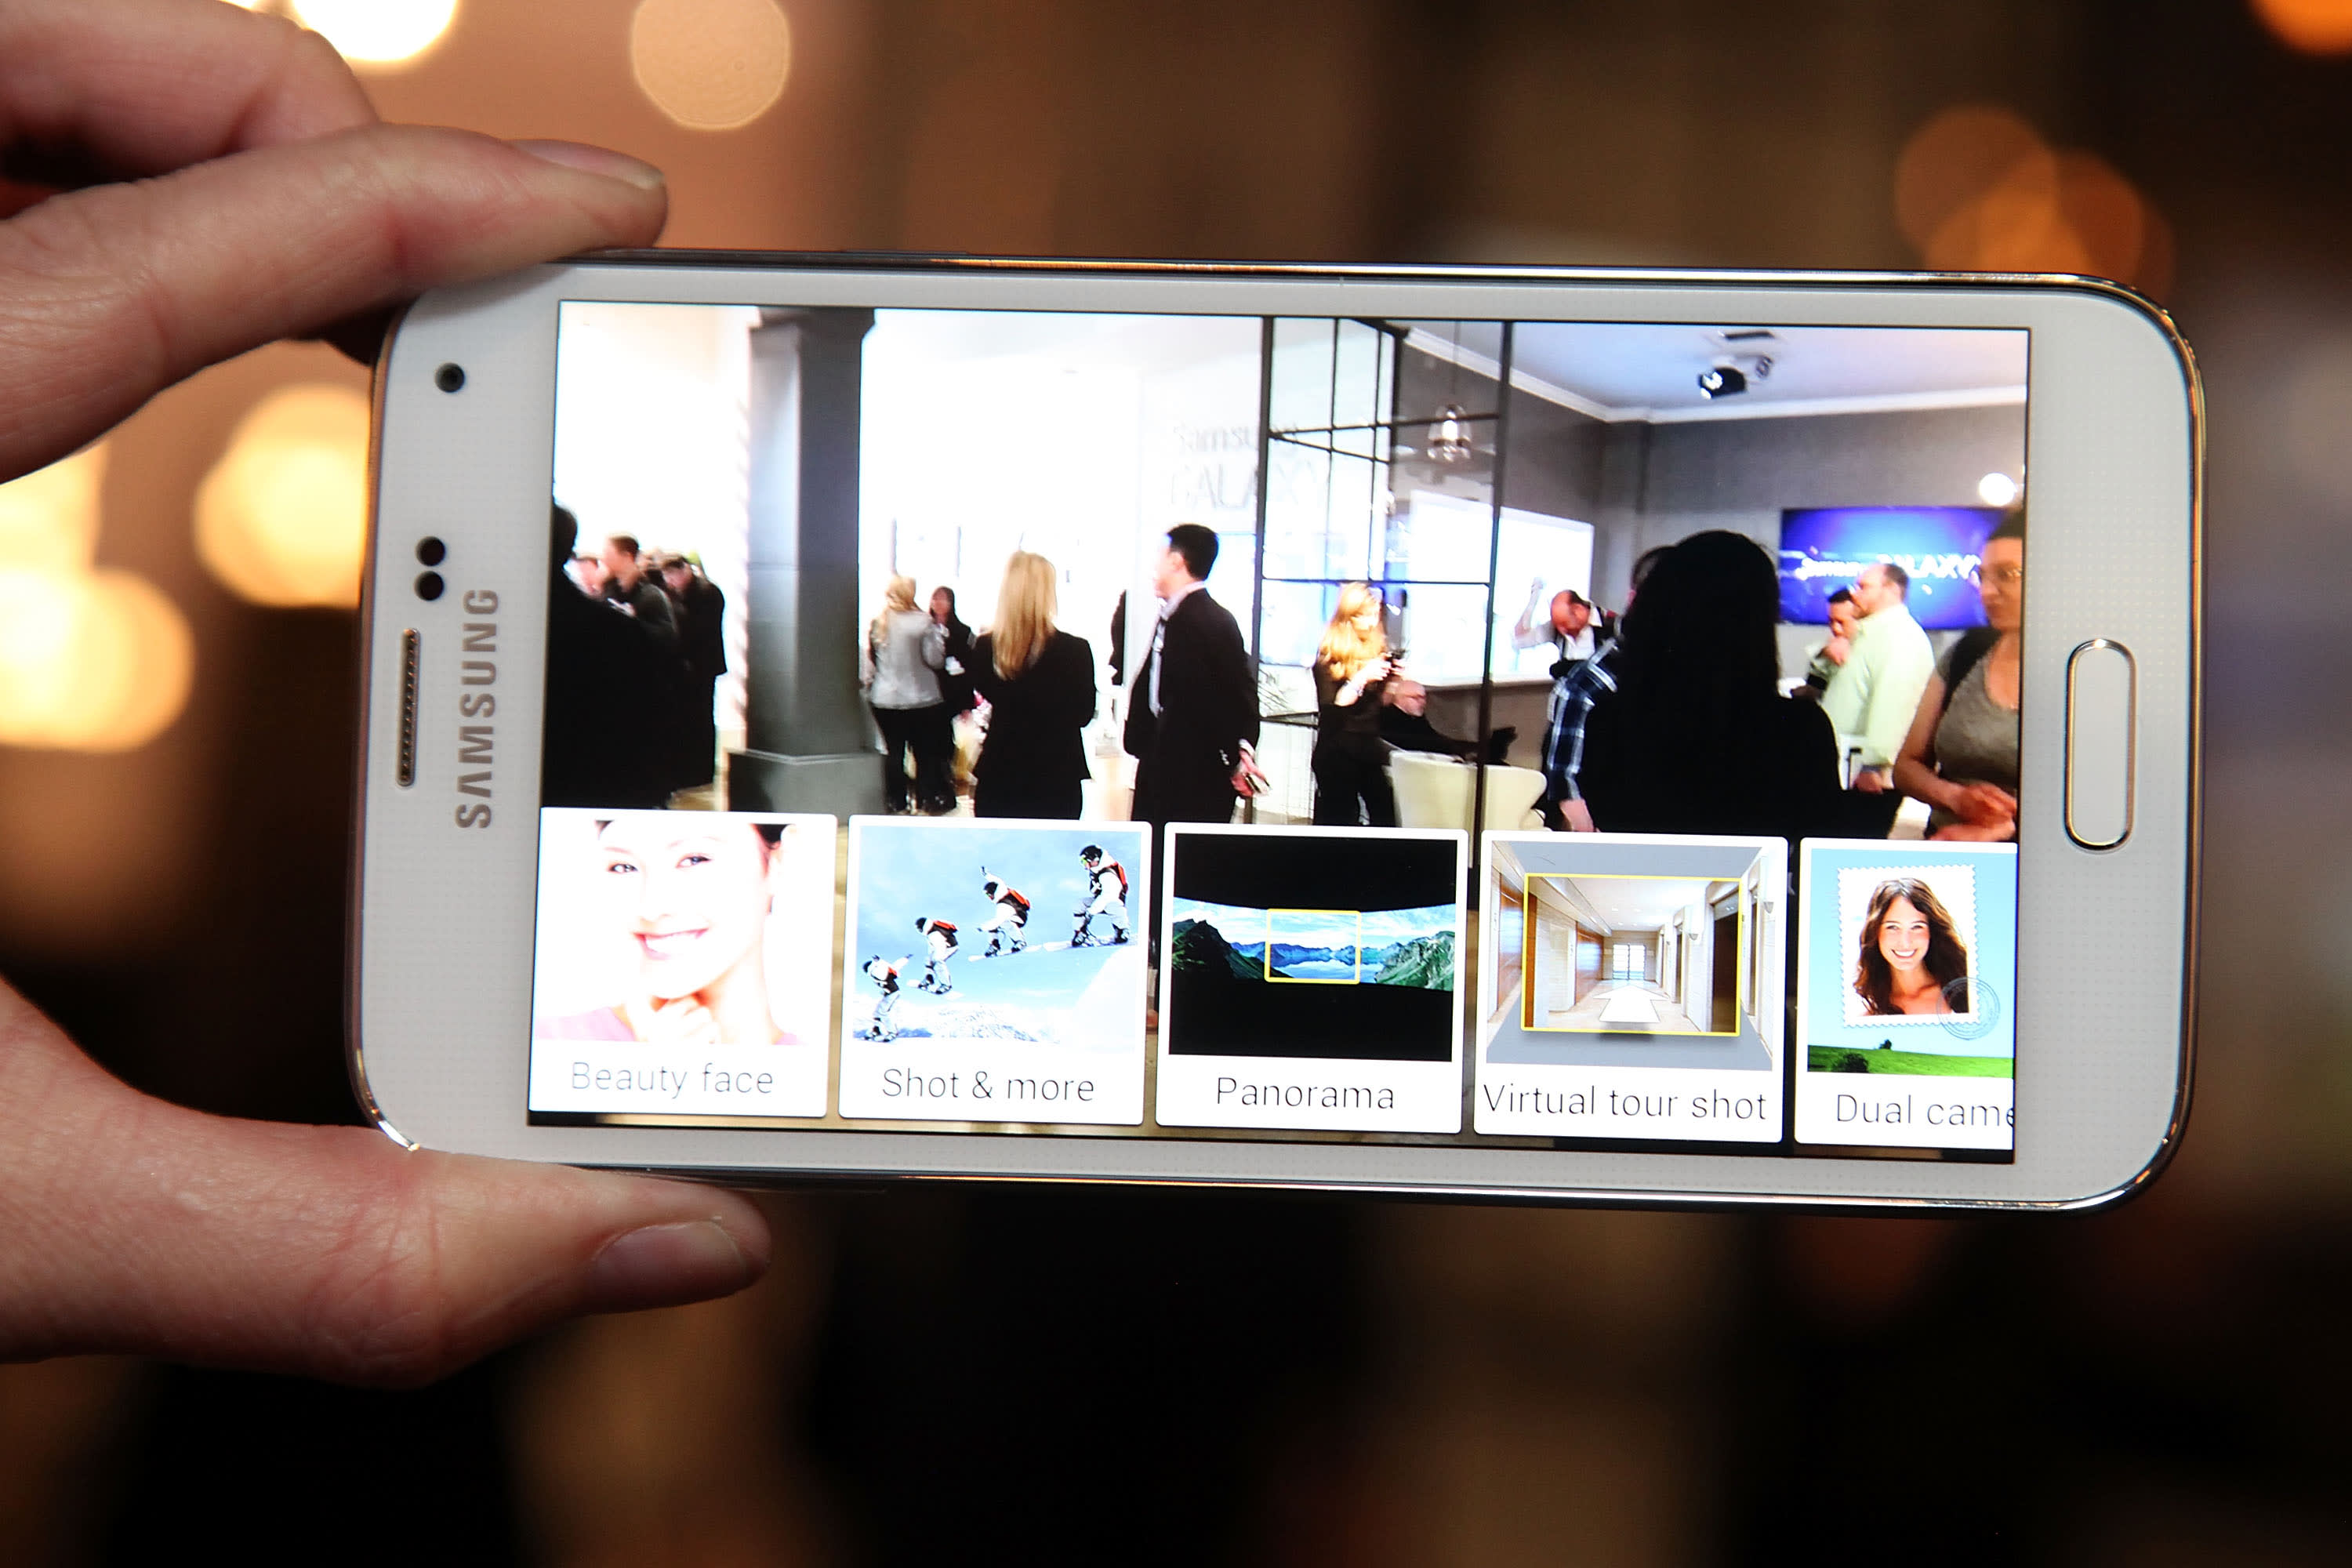 Why Samsung's stock could see double-digit gains